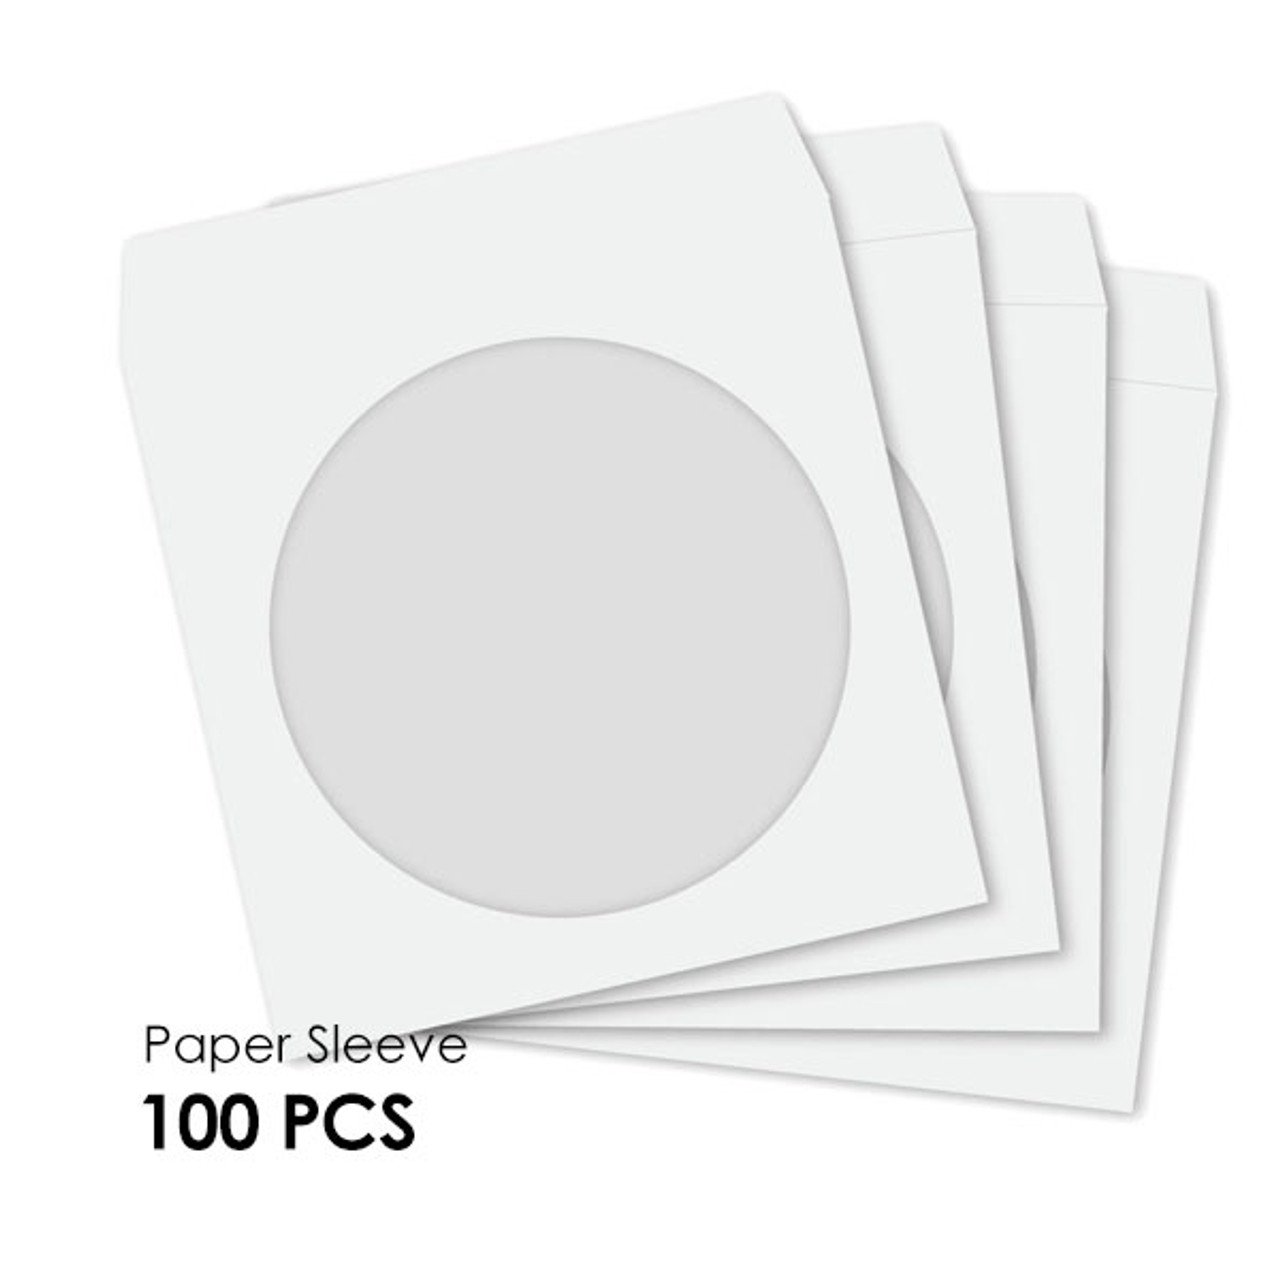 Product image for CD-DVD Paper Sleeve with Windows Hold 1 Disc  (100PCS/Pack)   CX Computer Superstore